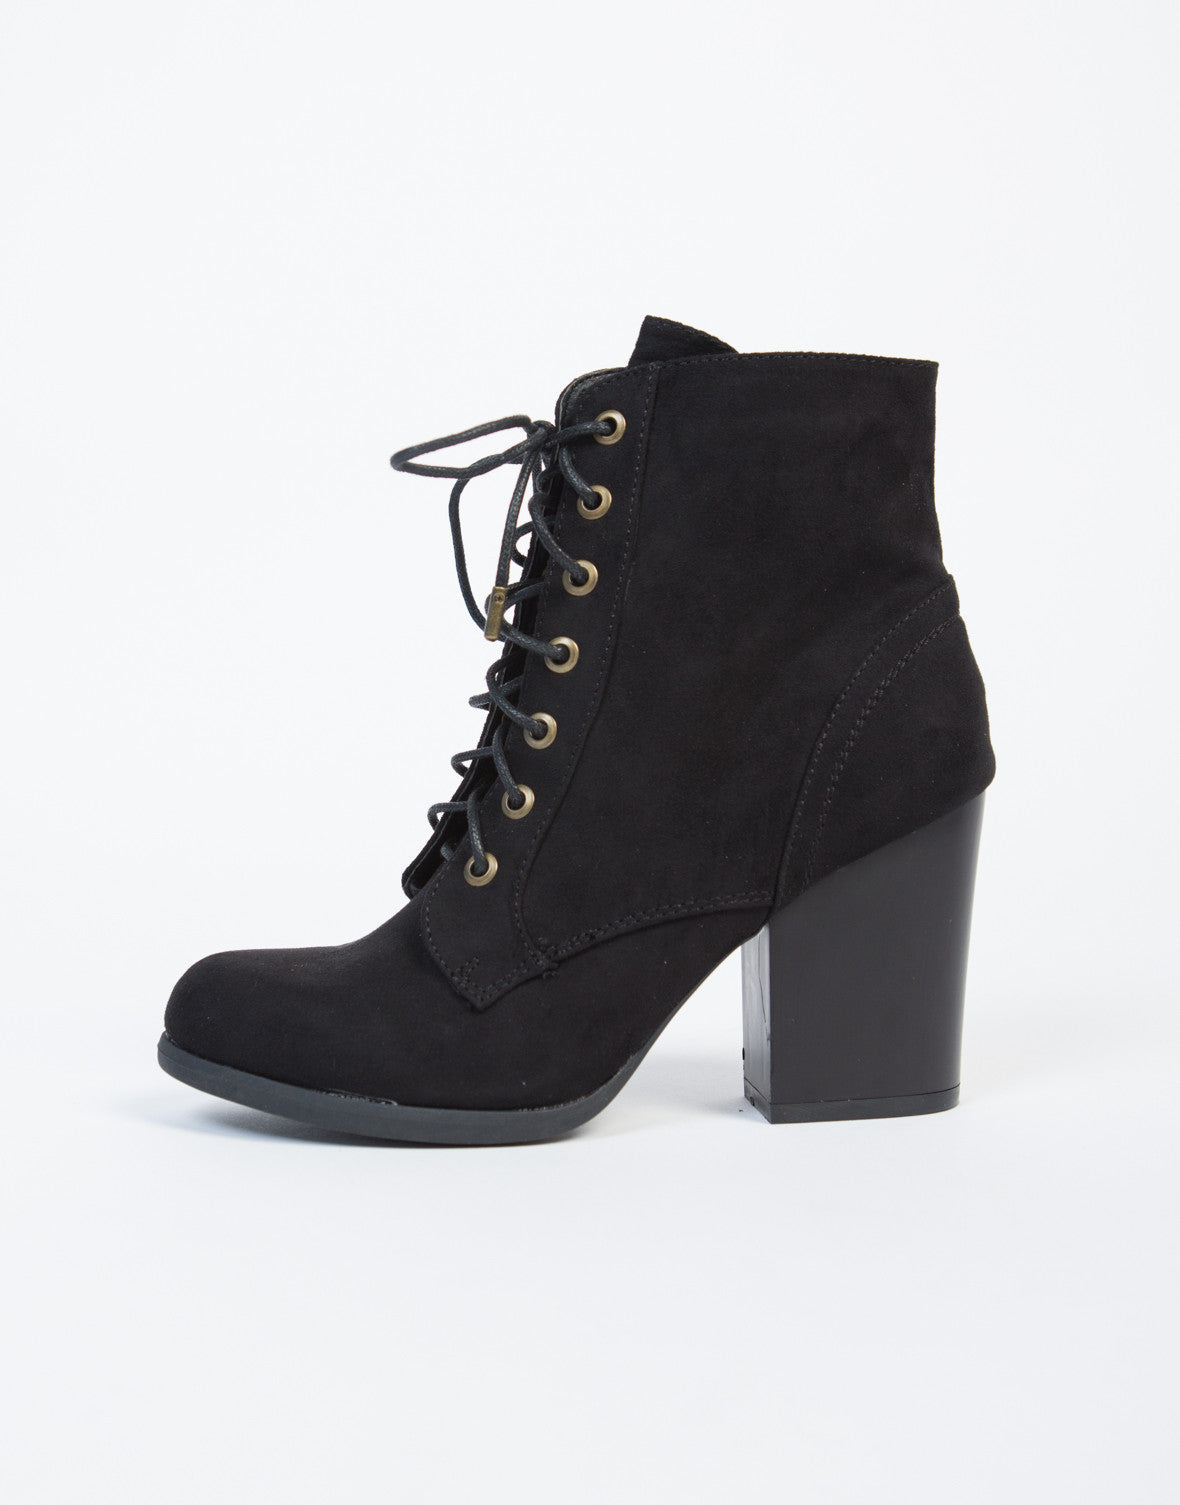 Try a daring new look in a pair of lace-up boots that hit at the knee or at the thigh. The lace details add some seriously sexy style when they're paired with a stiletto heel and a short hemline, but they can also have a more boho twist if you choose a style in a soft, neutral suede.